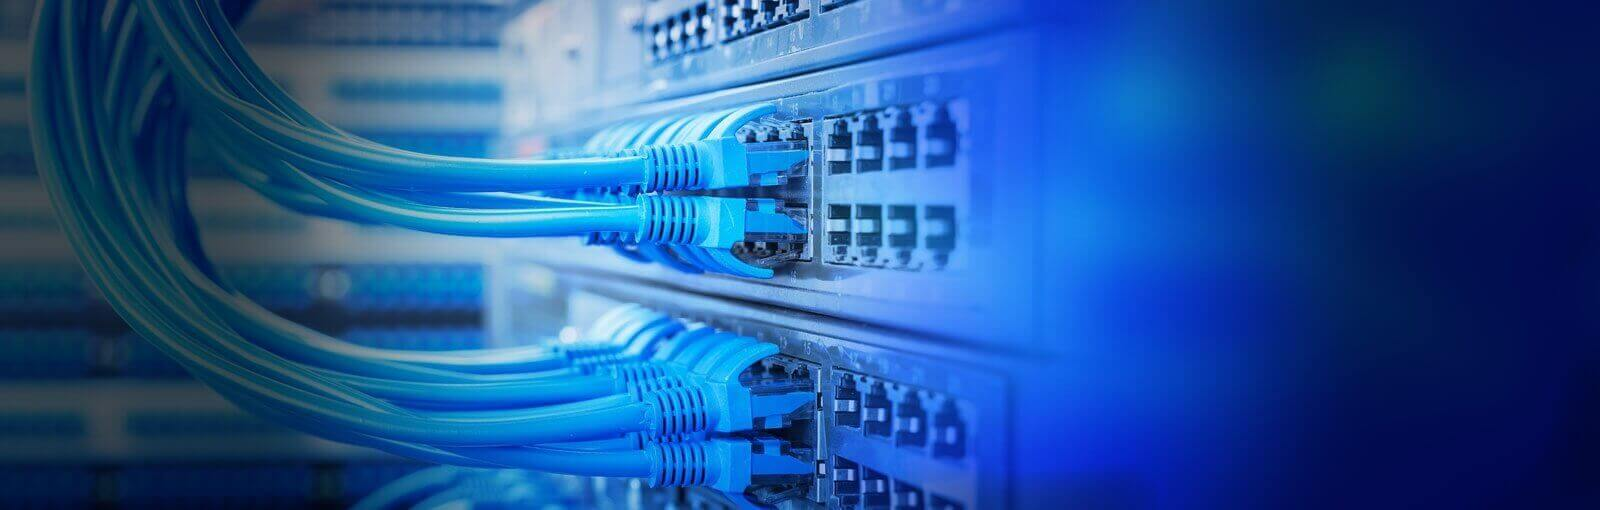 Ethernet Cable vs Patch Cable. What is The Difference Between Patch Cable & Ethernet Cable